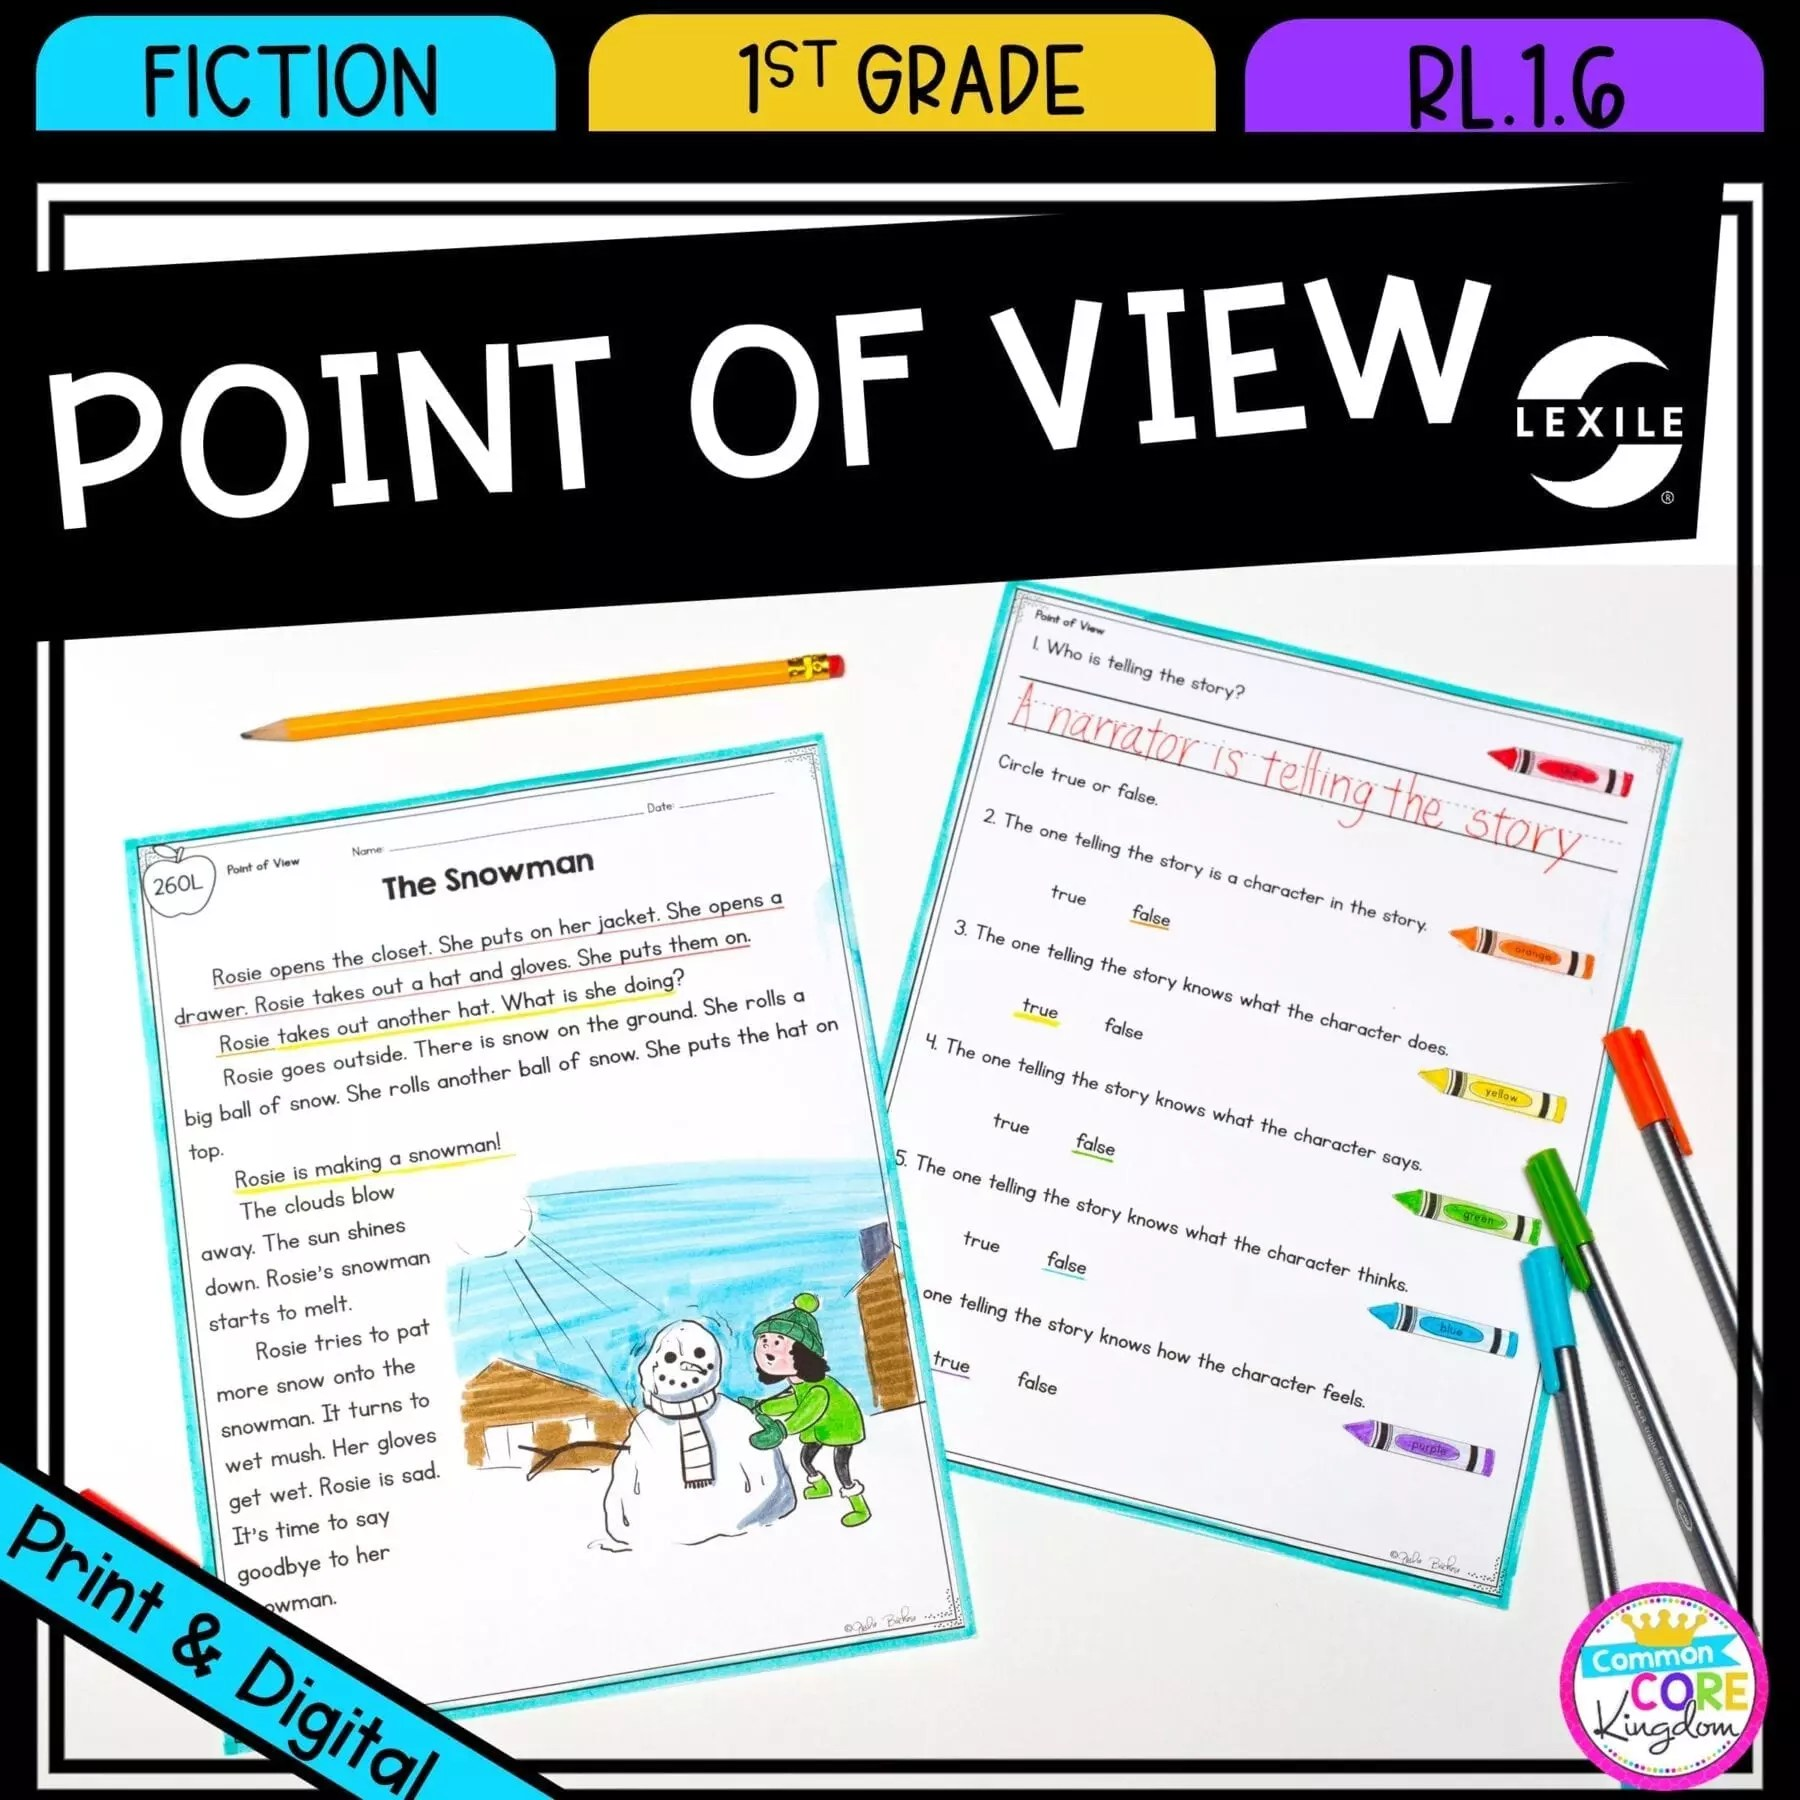 hight resolution of Point of View 1st Grade   RL.1.6 Google Slides Distance Learning Pack